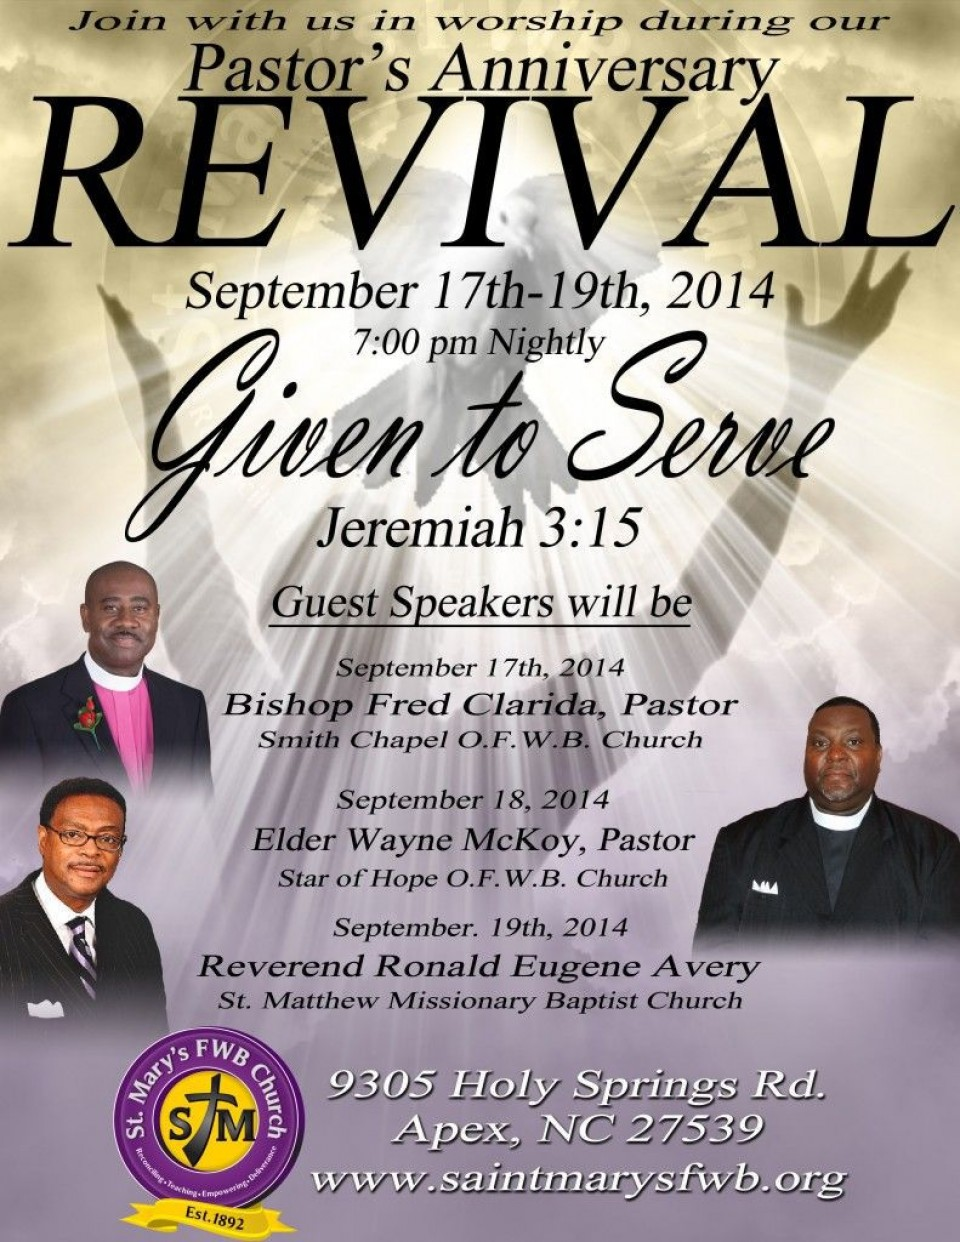 001 Unbelievable Church Flyer Template Free Printable Highest Quality  Event960